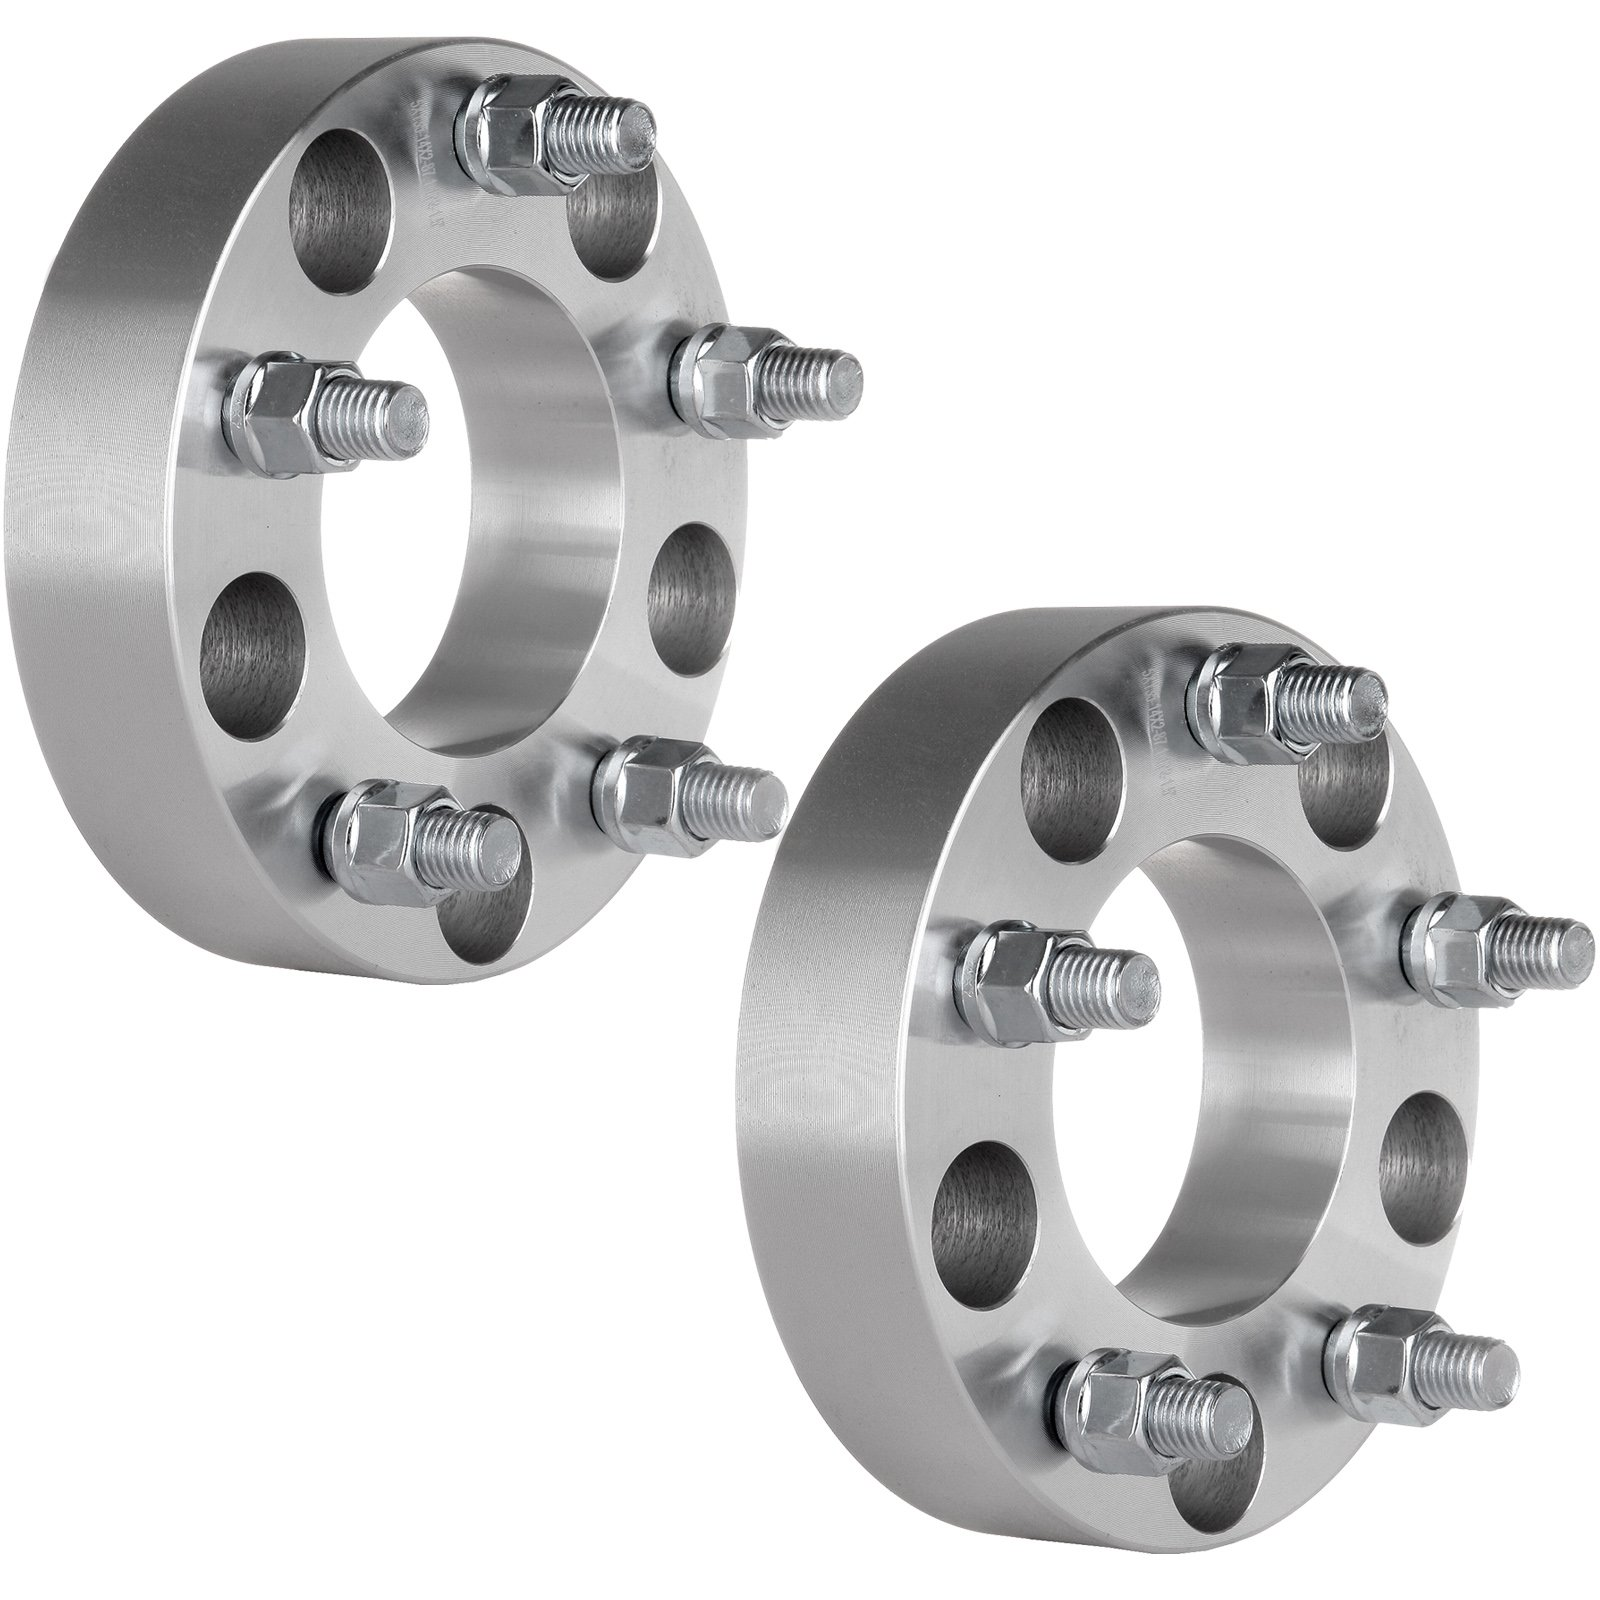 ECCPP Wheel Spacers 5 lug 2PCS 1.5'' Thick 5x135 to 5x135 for 1998 1999 2000 2001 2002 Ford Expedition F-150 Lincoln Navigator Wheel Spacer with 14x2 Studs